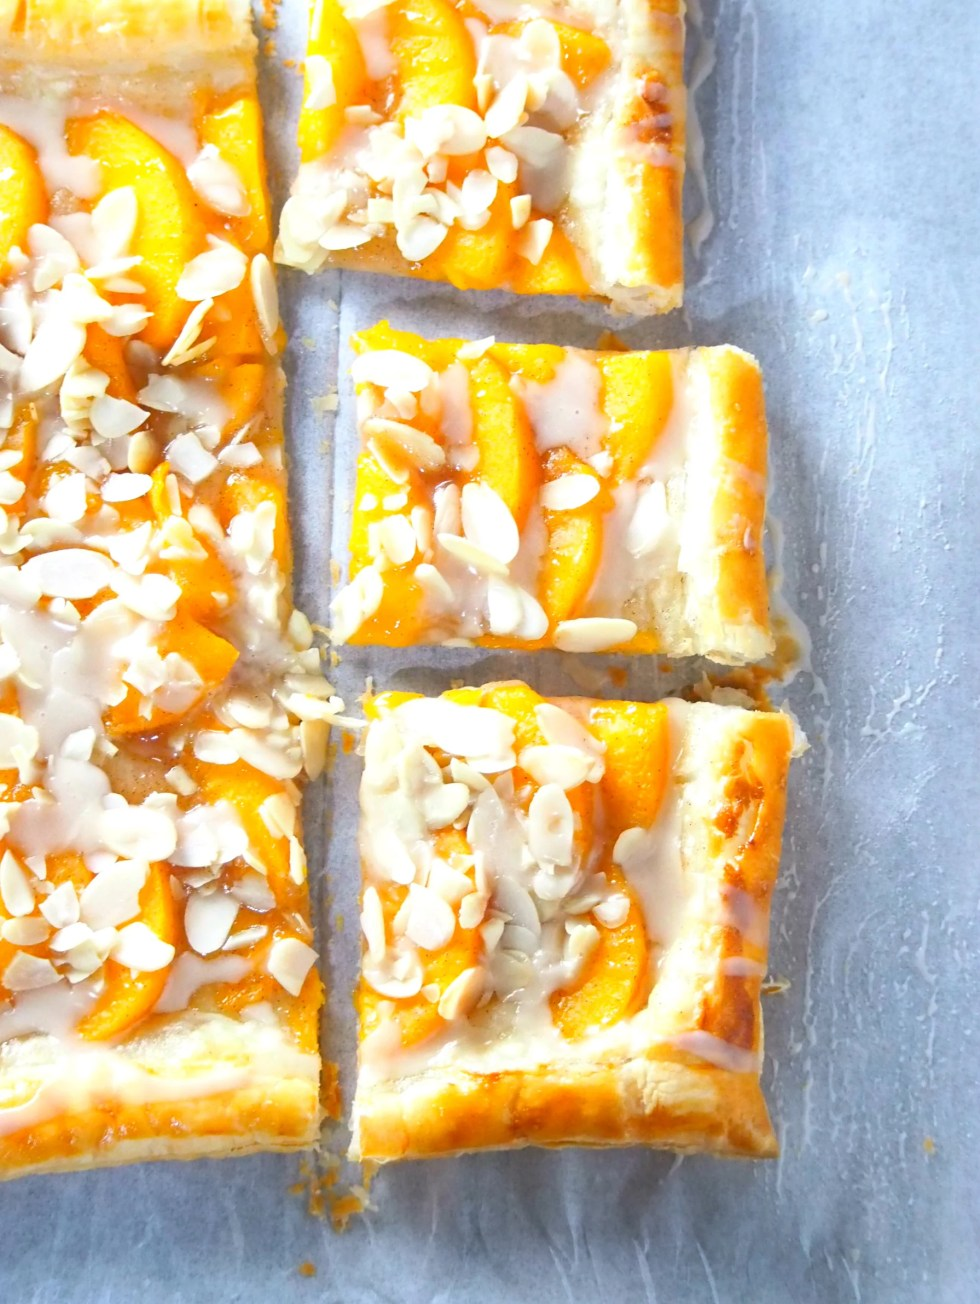 This peach tart is a delicious and easy peach dessert recipe that uses read-made puff pastry and yields a fresh, butteyr and flaky pastry dessert.